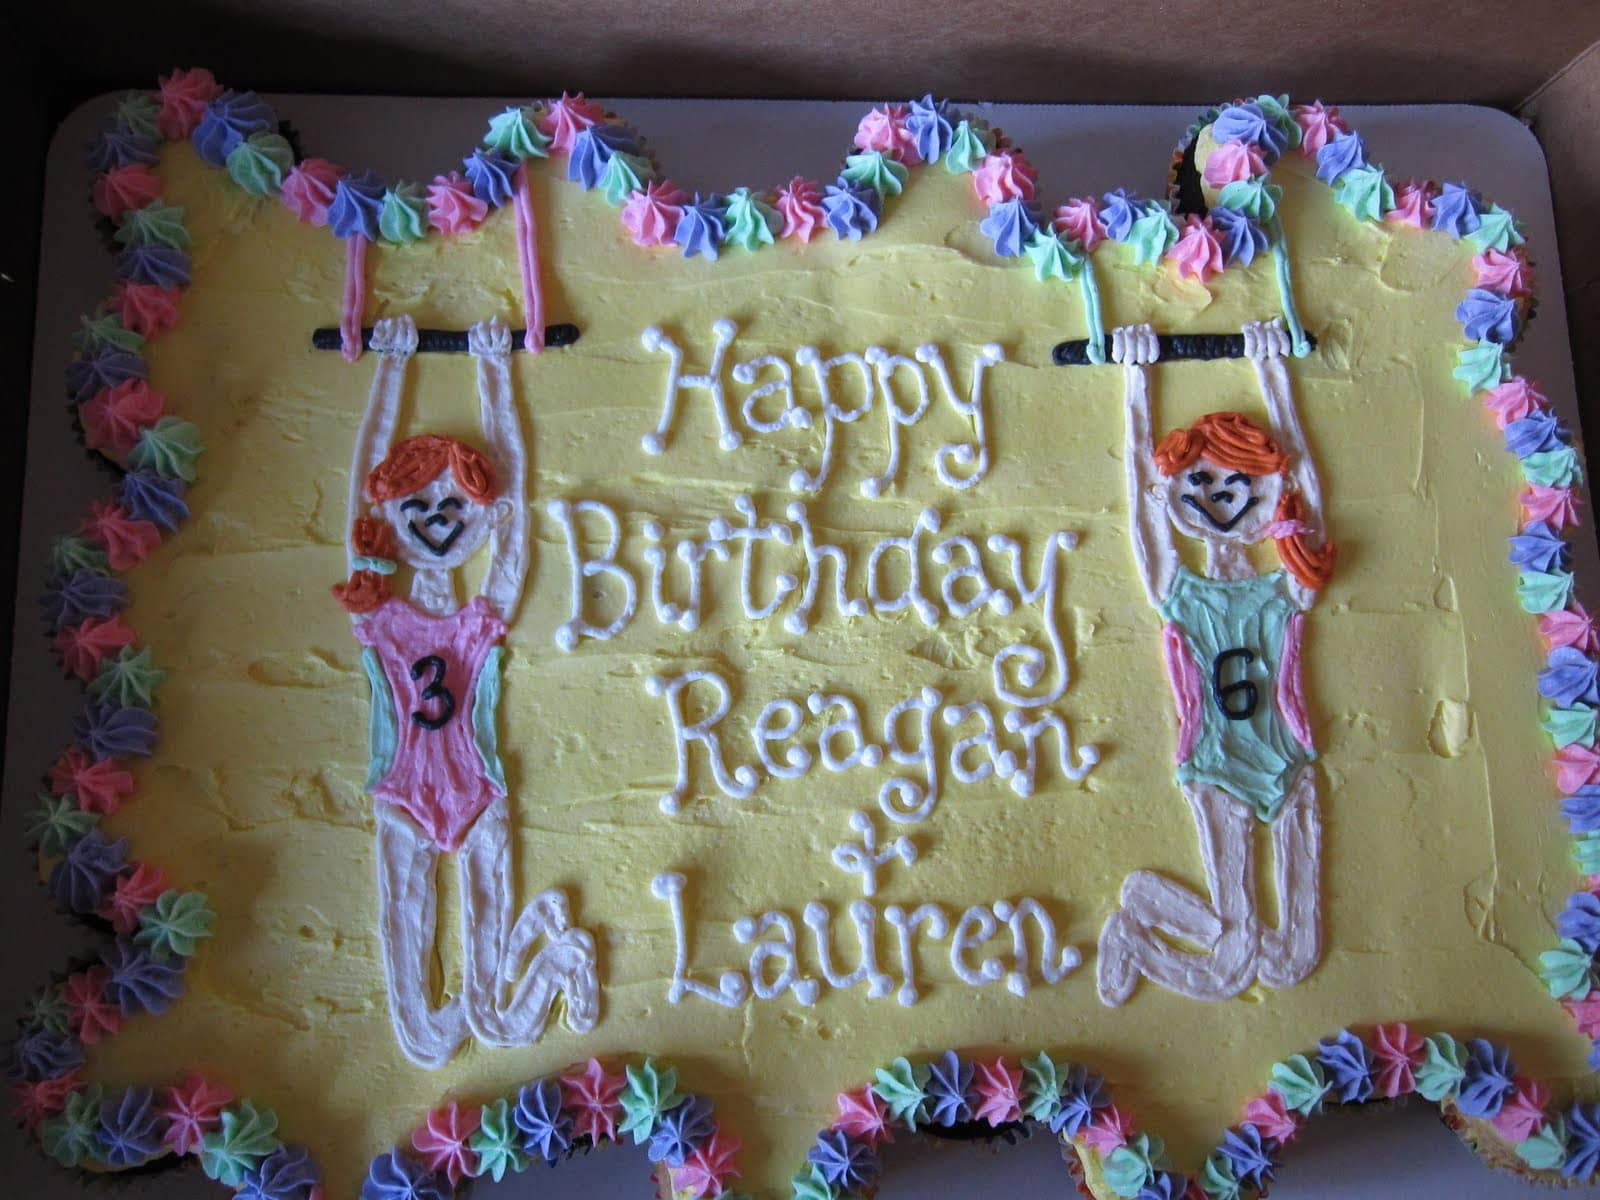 Sheet cake decorated with gymnastics them and Happy Birthday Reagan & Lauren